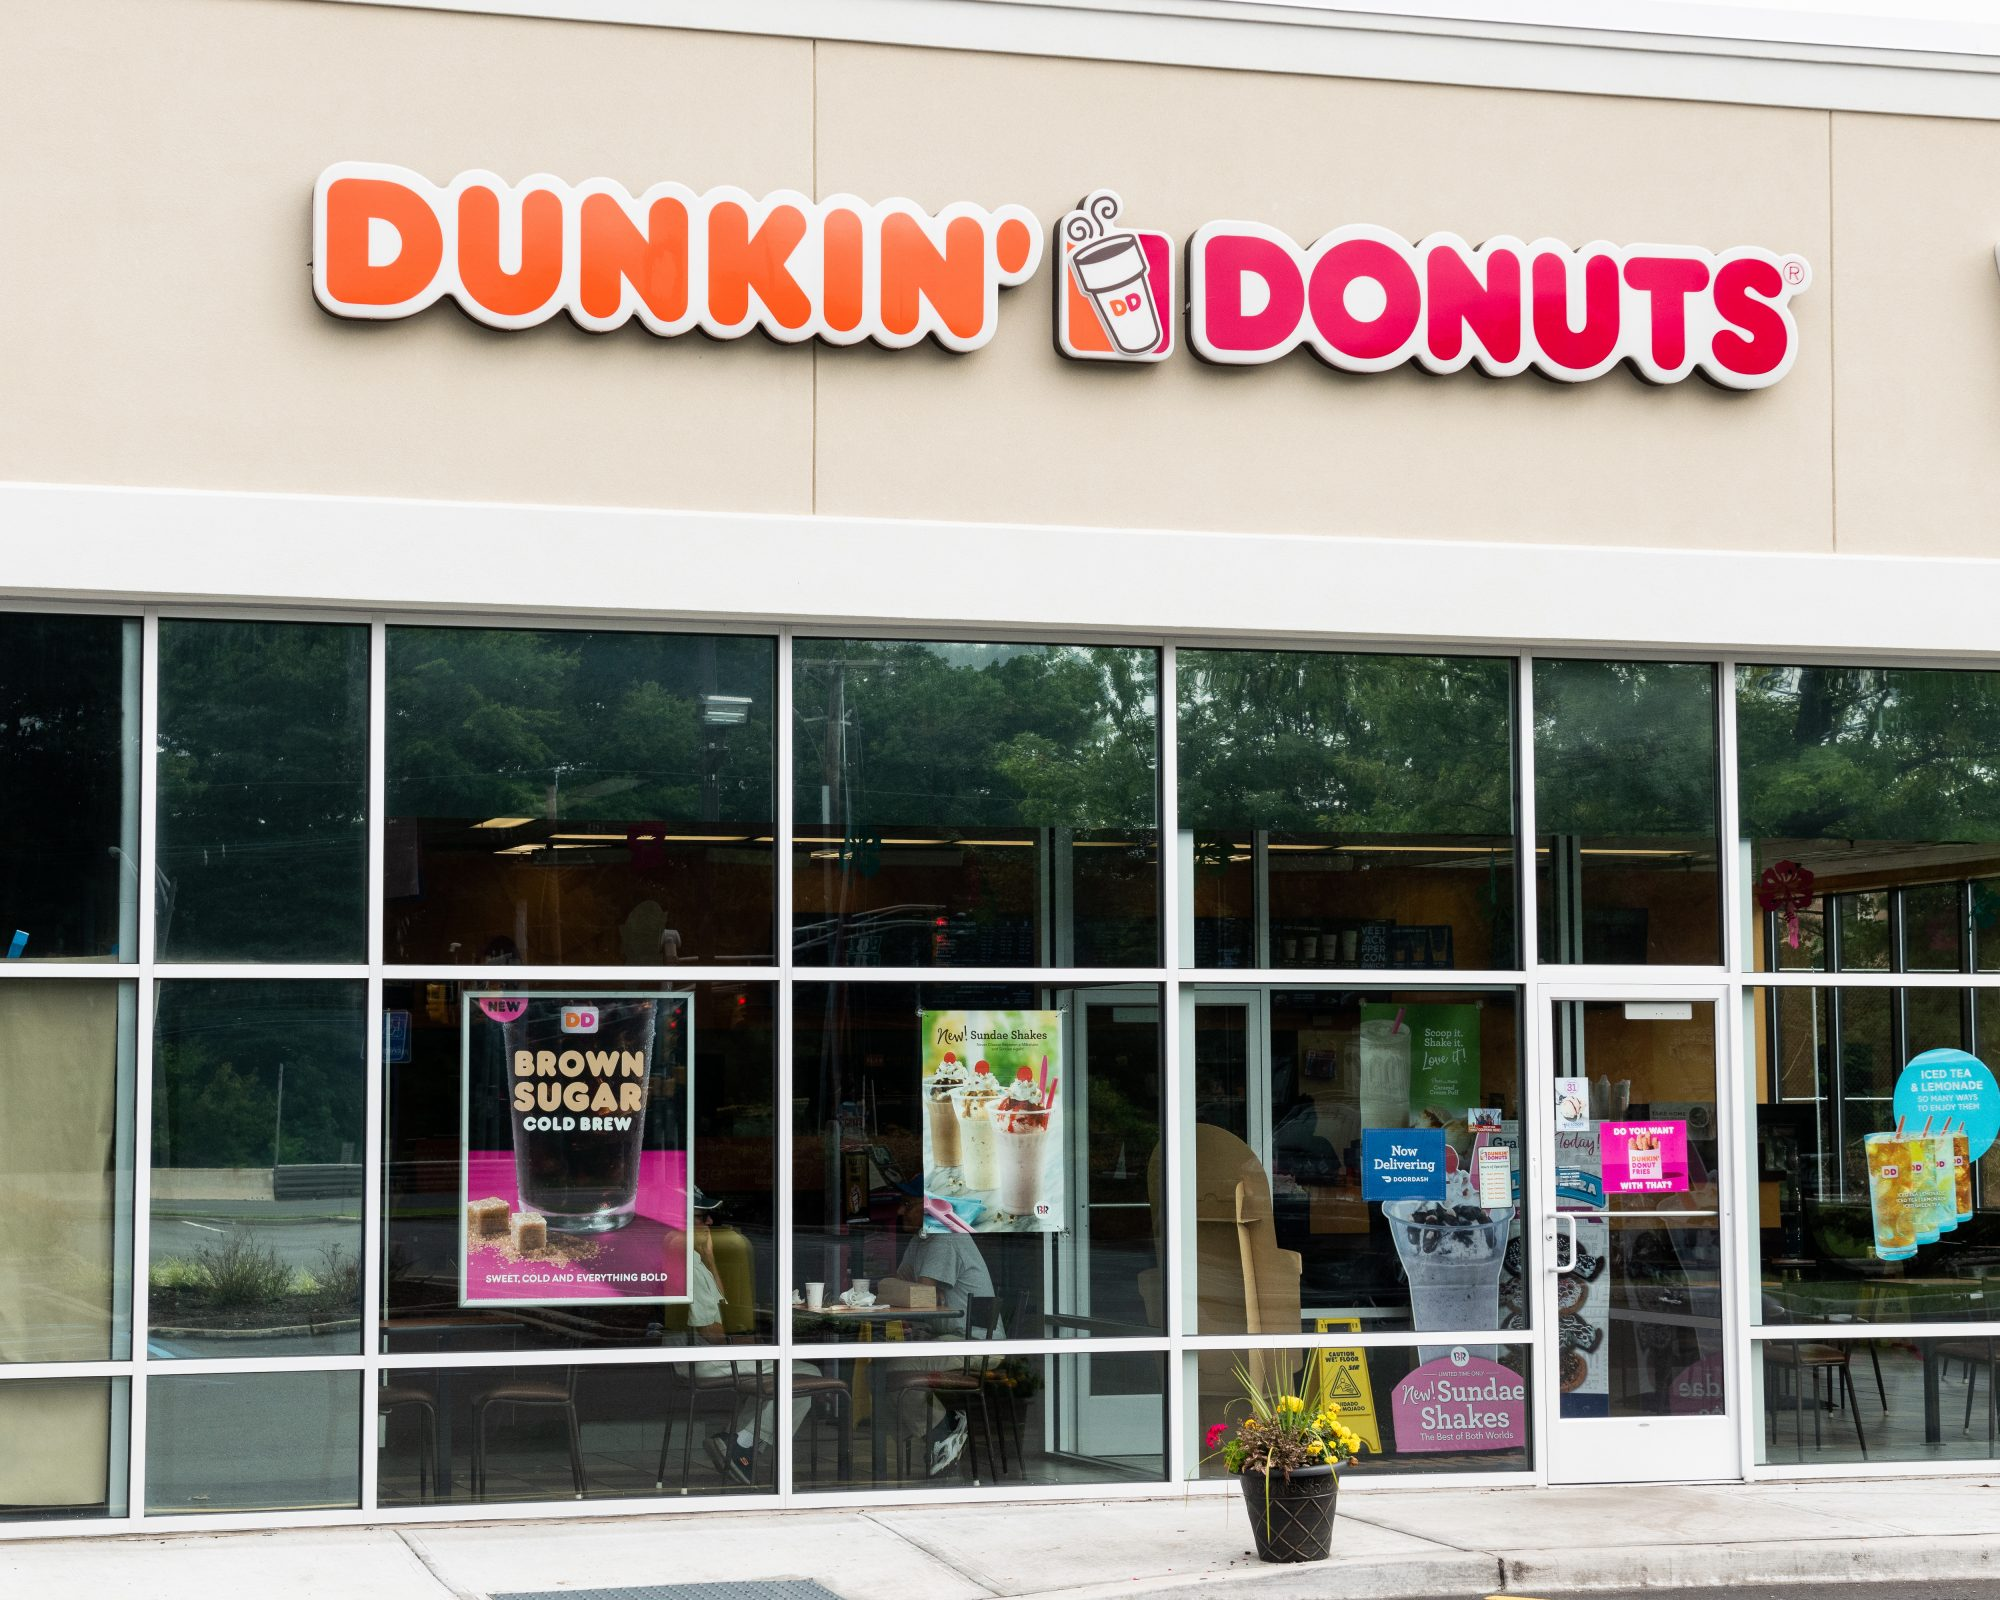 Dunkin' Donuts store in North Brunswick Township, New Jersey